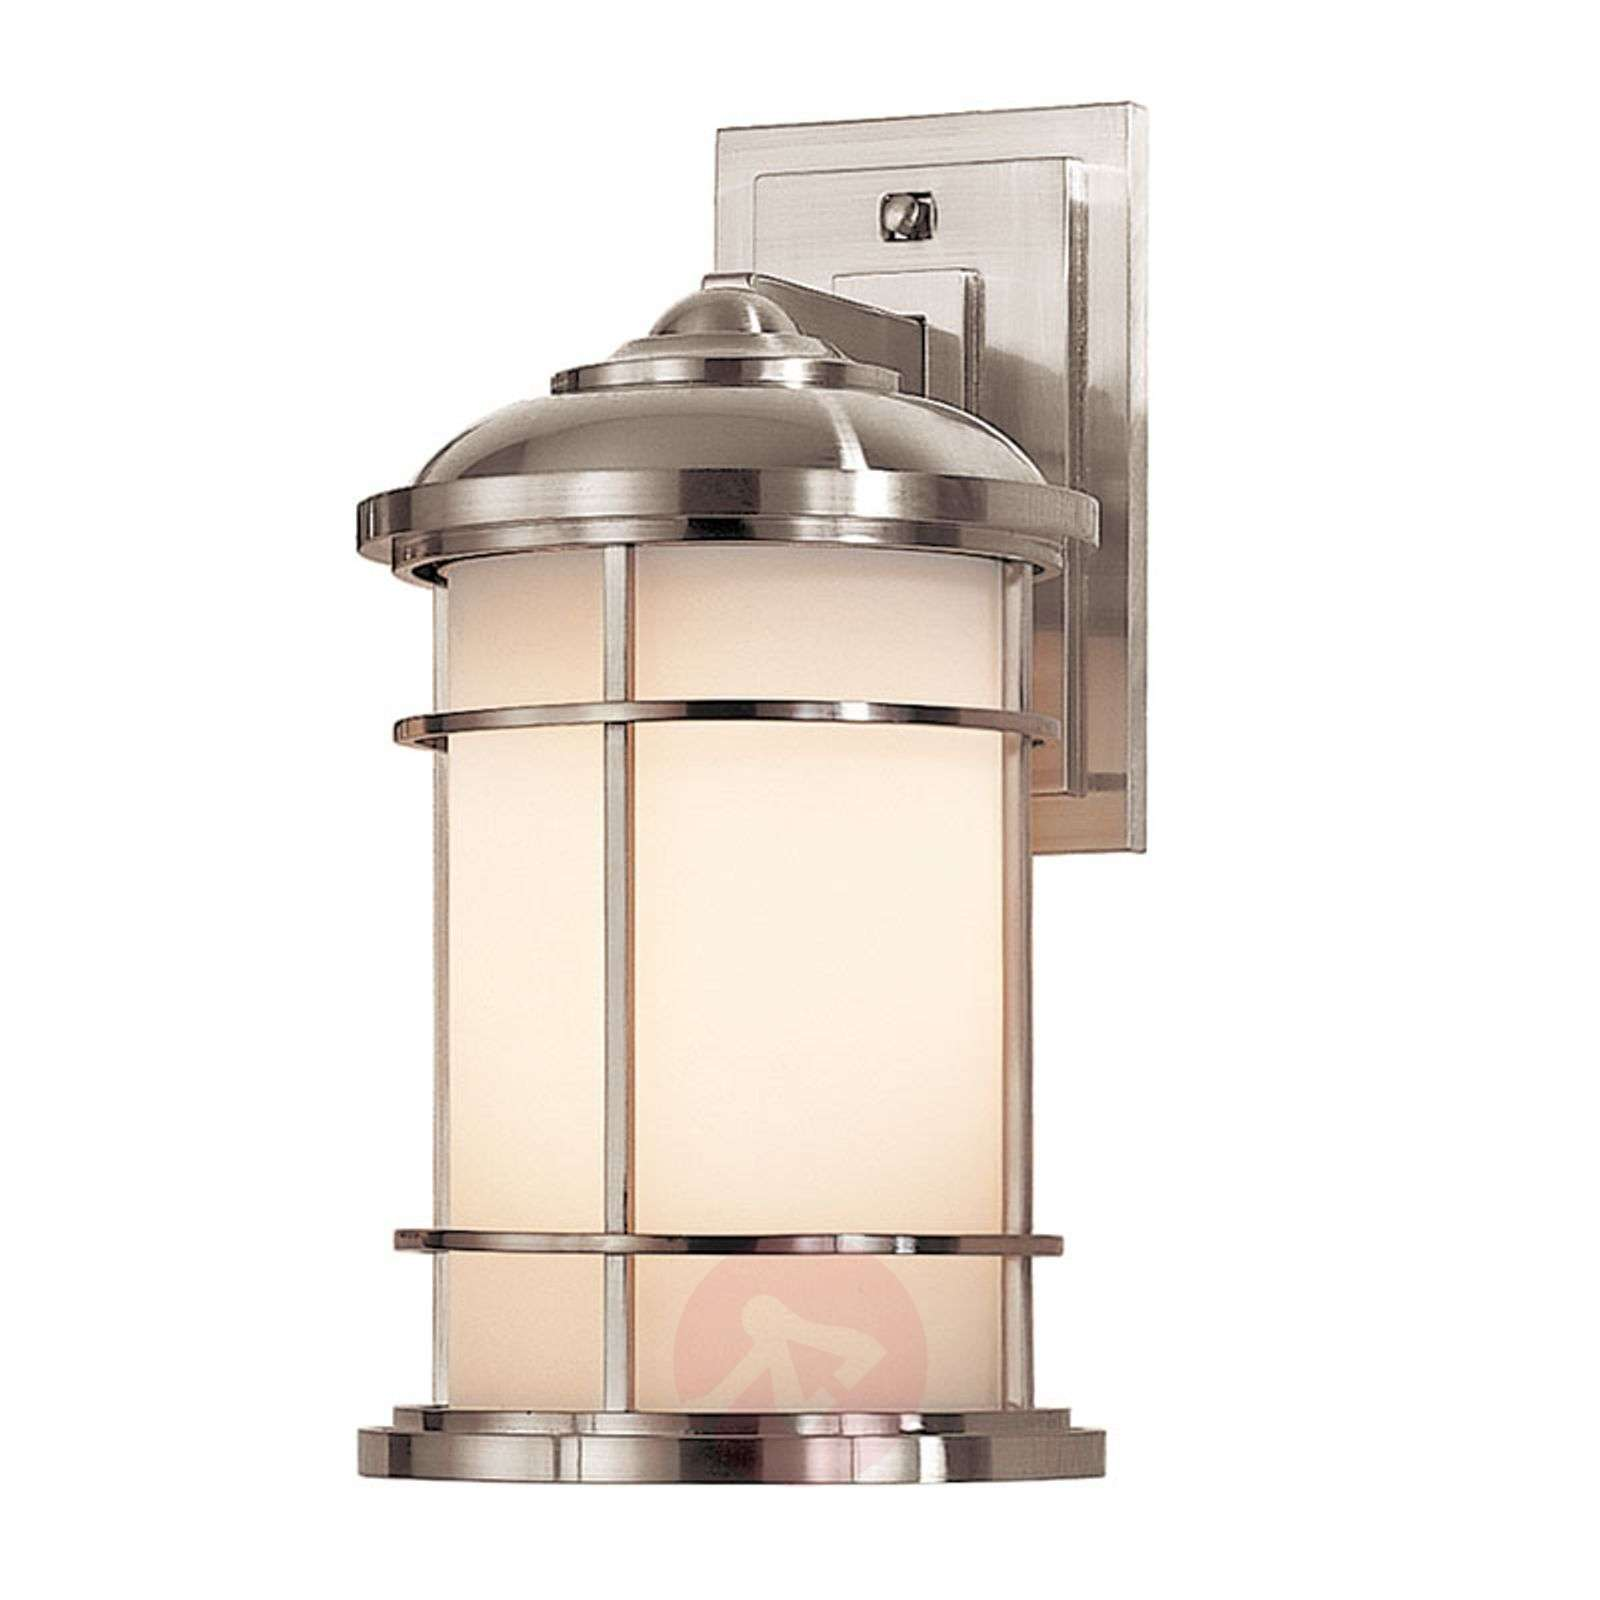 Lighthouse an outdoor wall light with style